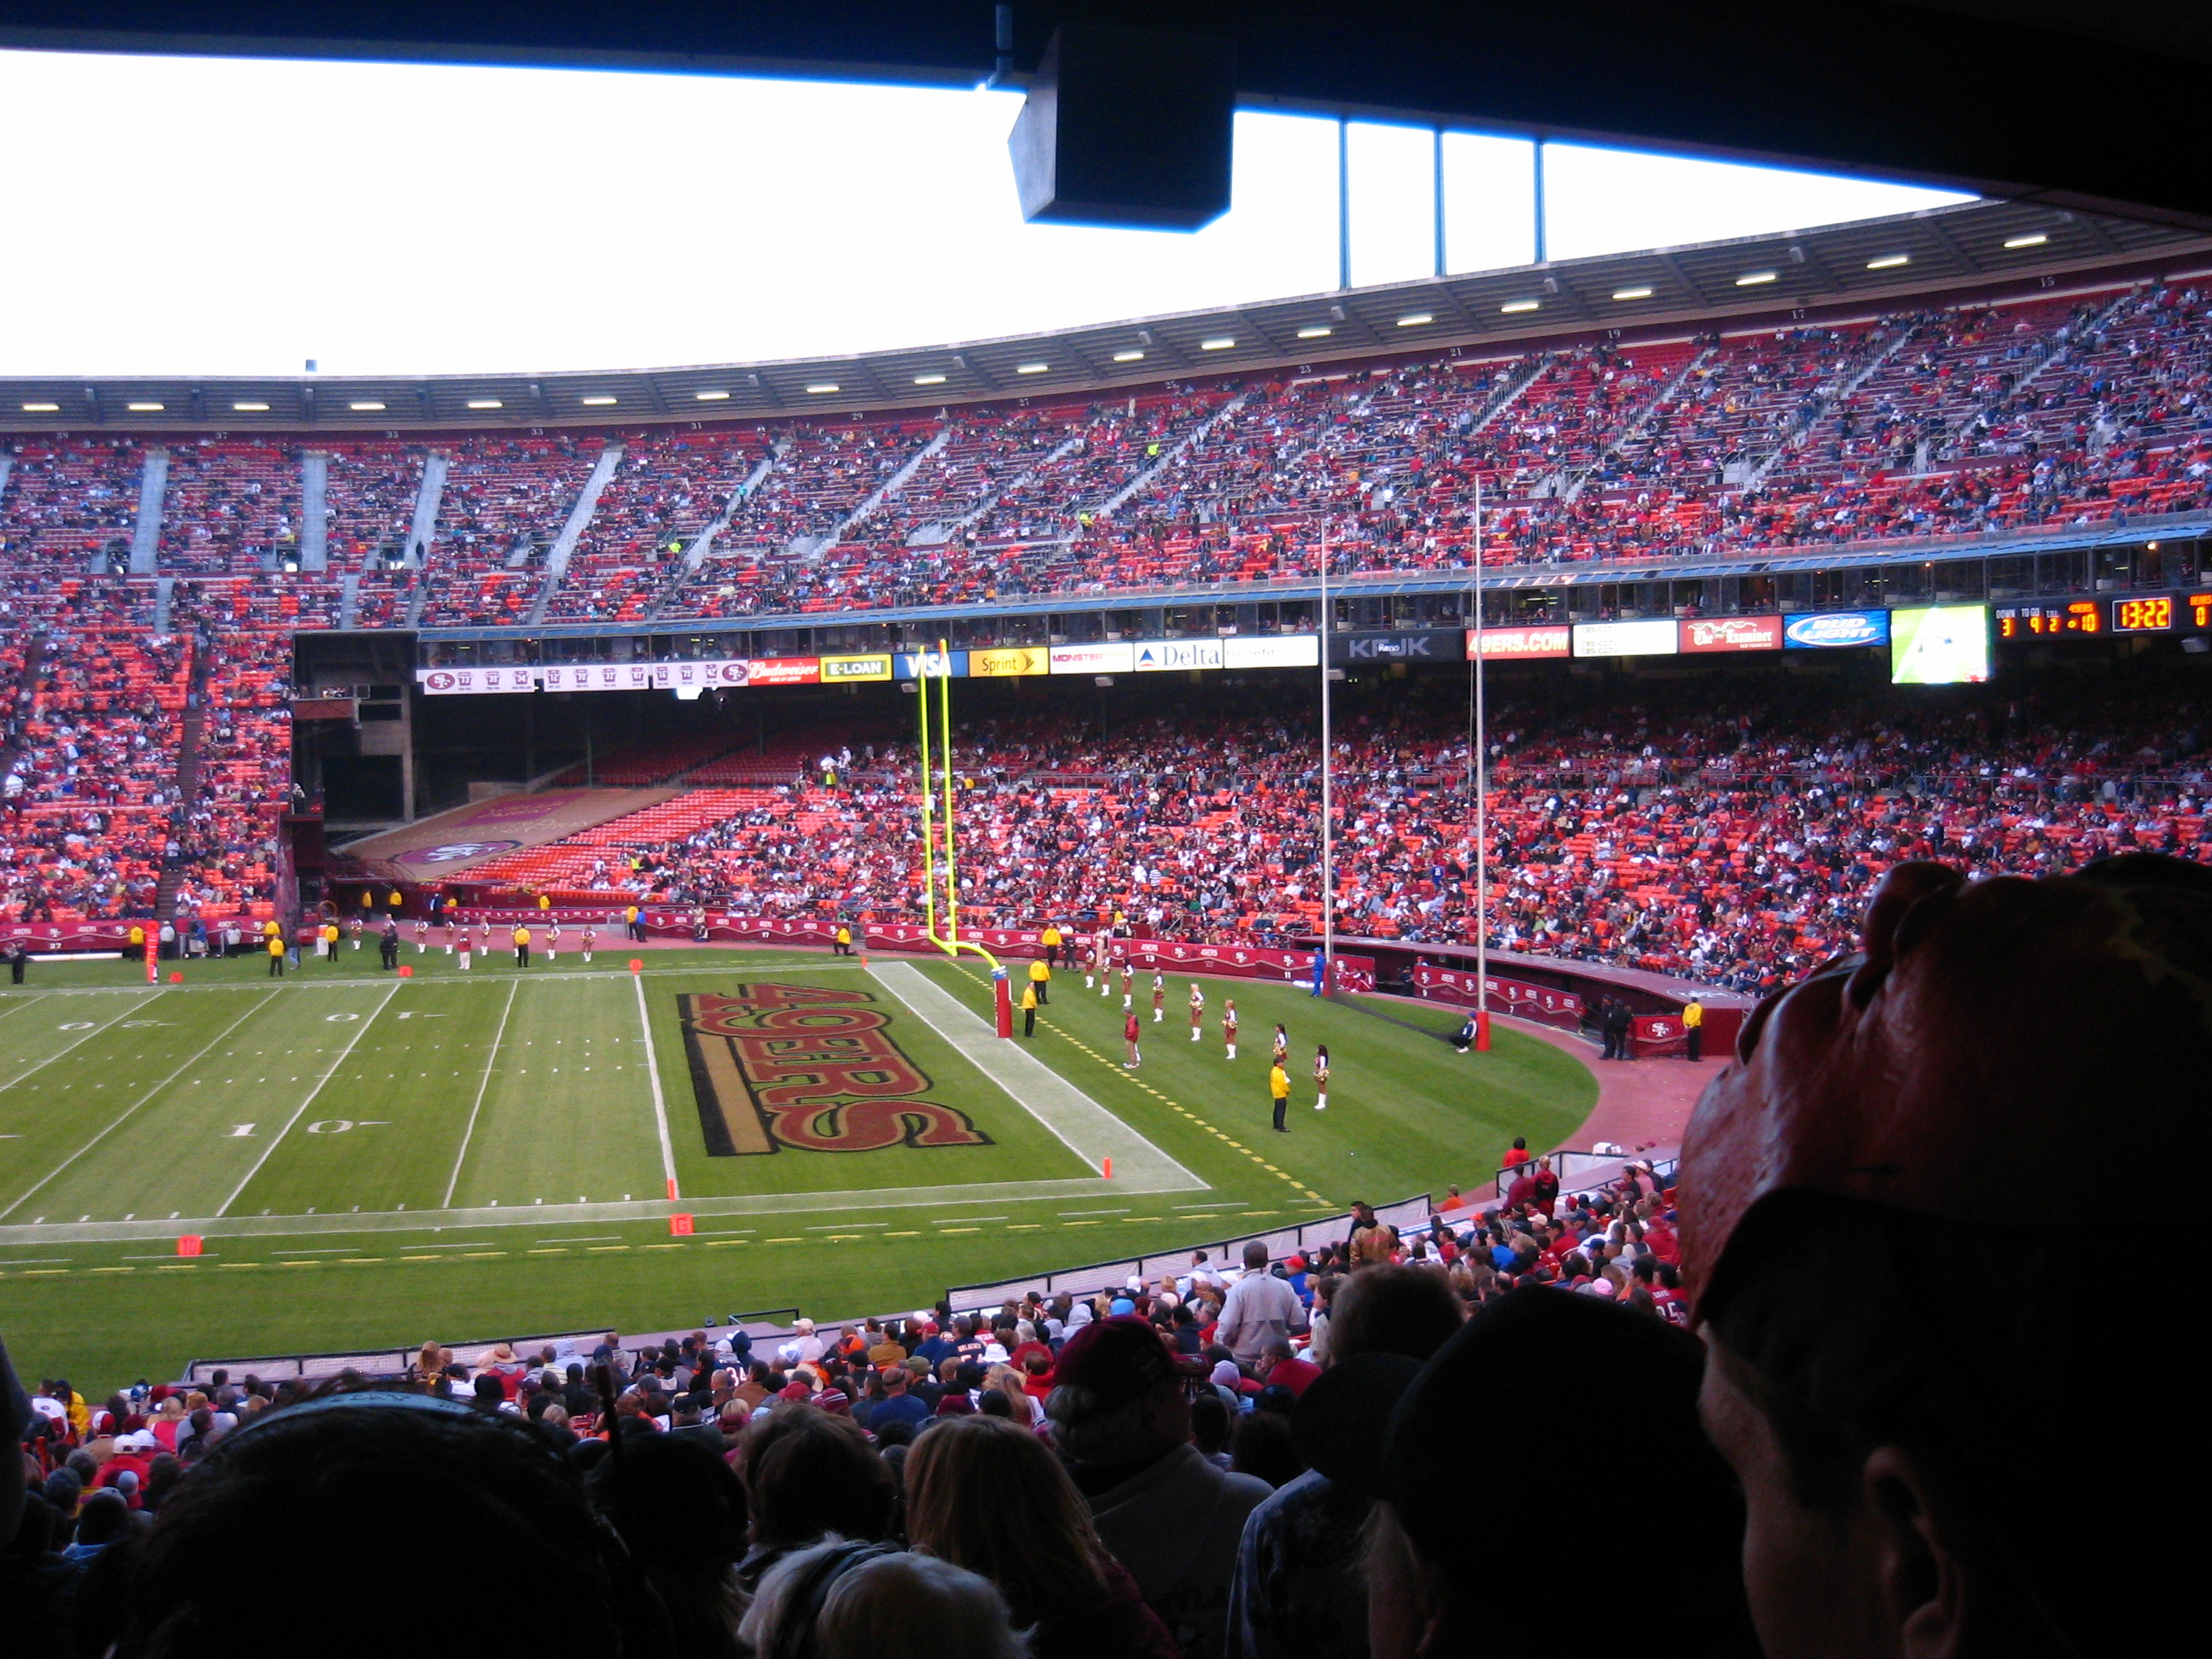 49ers @ Candlestick